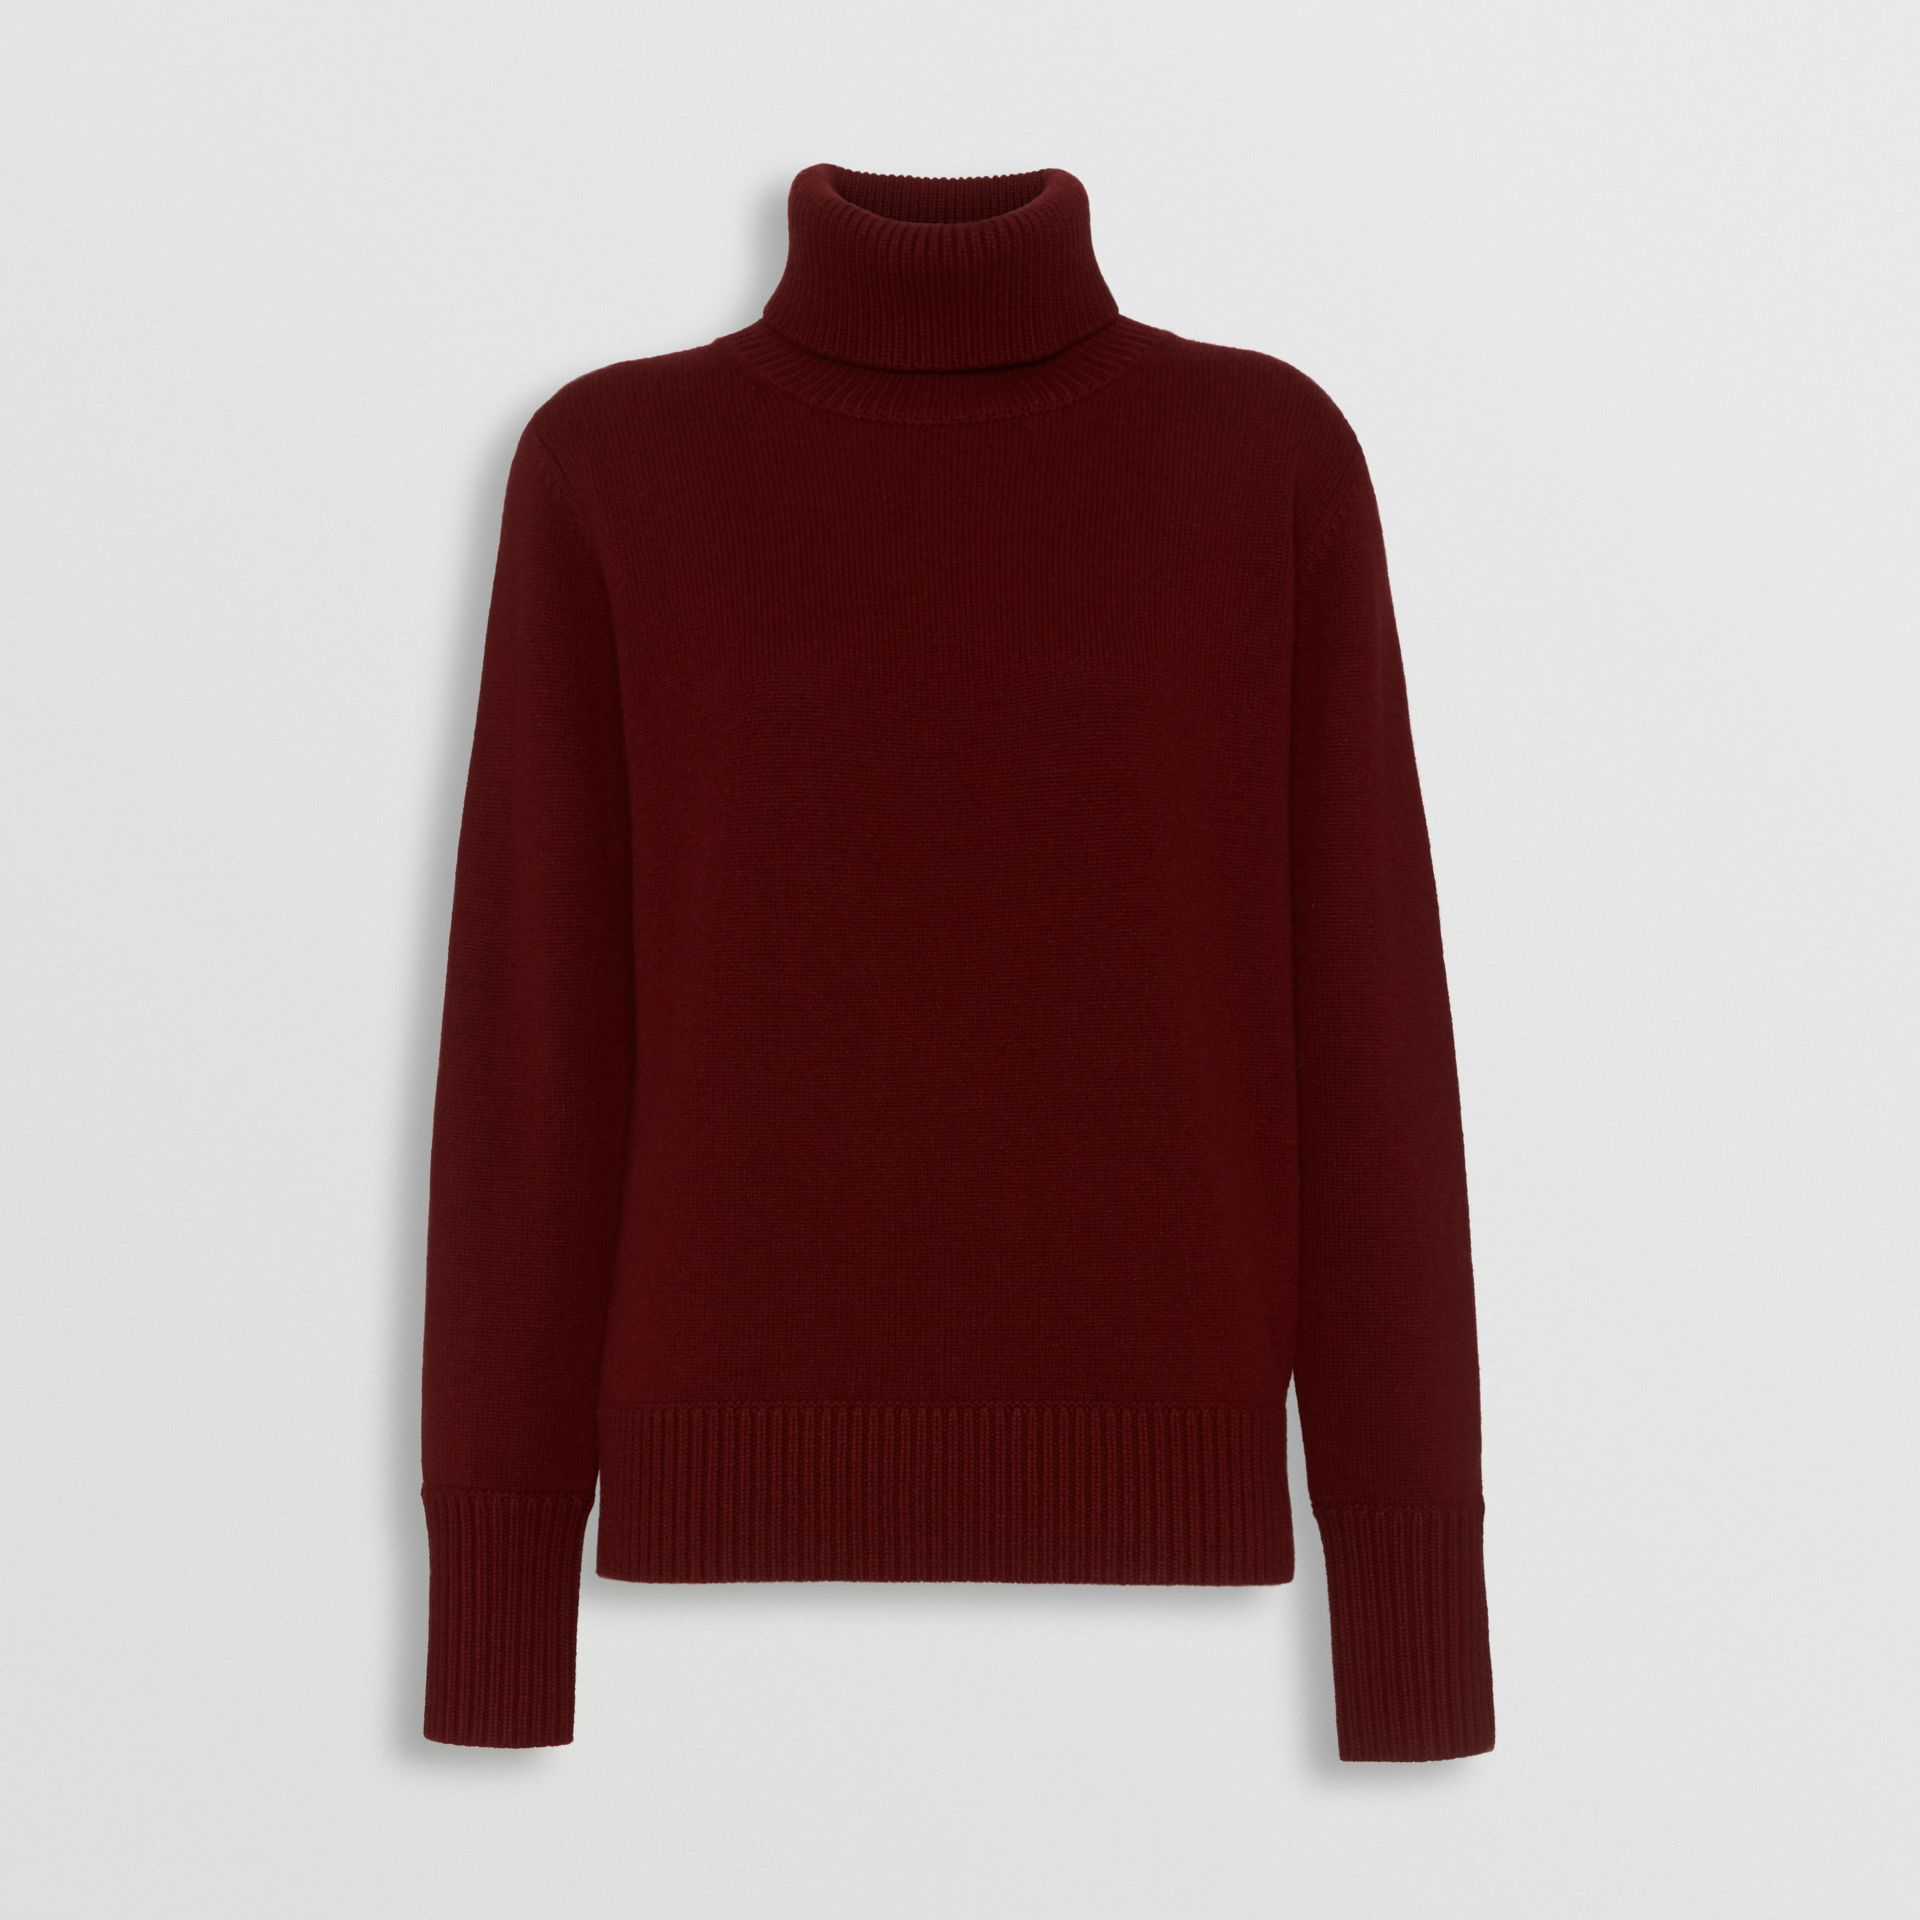 Archive Logo Appliqué Cashmere Roll-neck Sweater in Red - Women | Burberry United States - gallery image 3